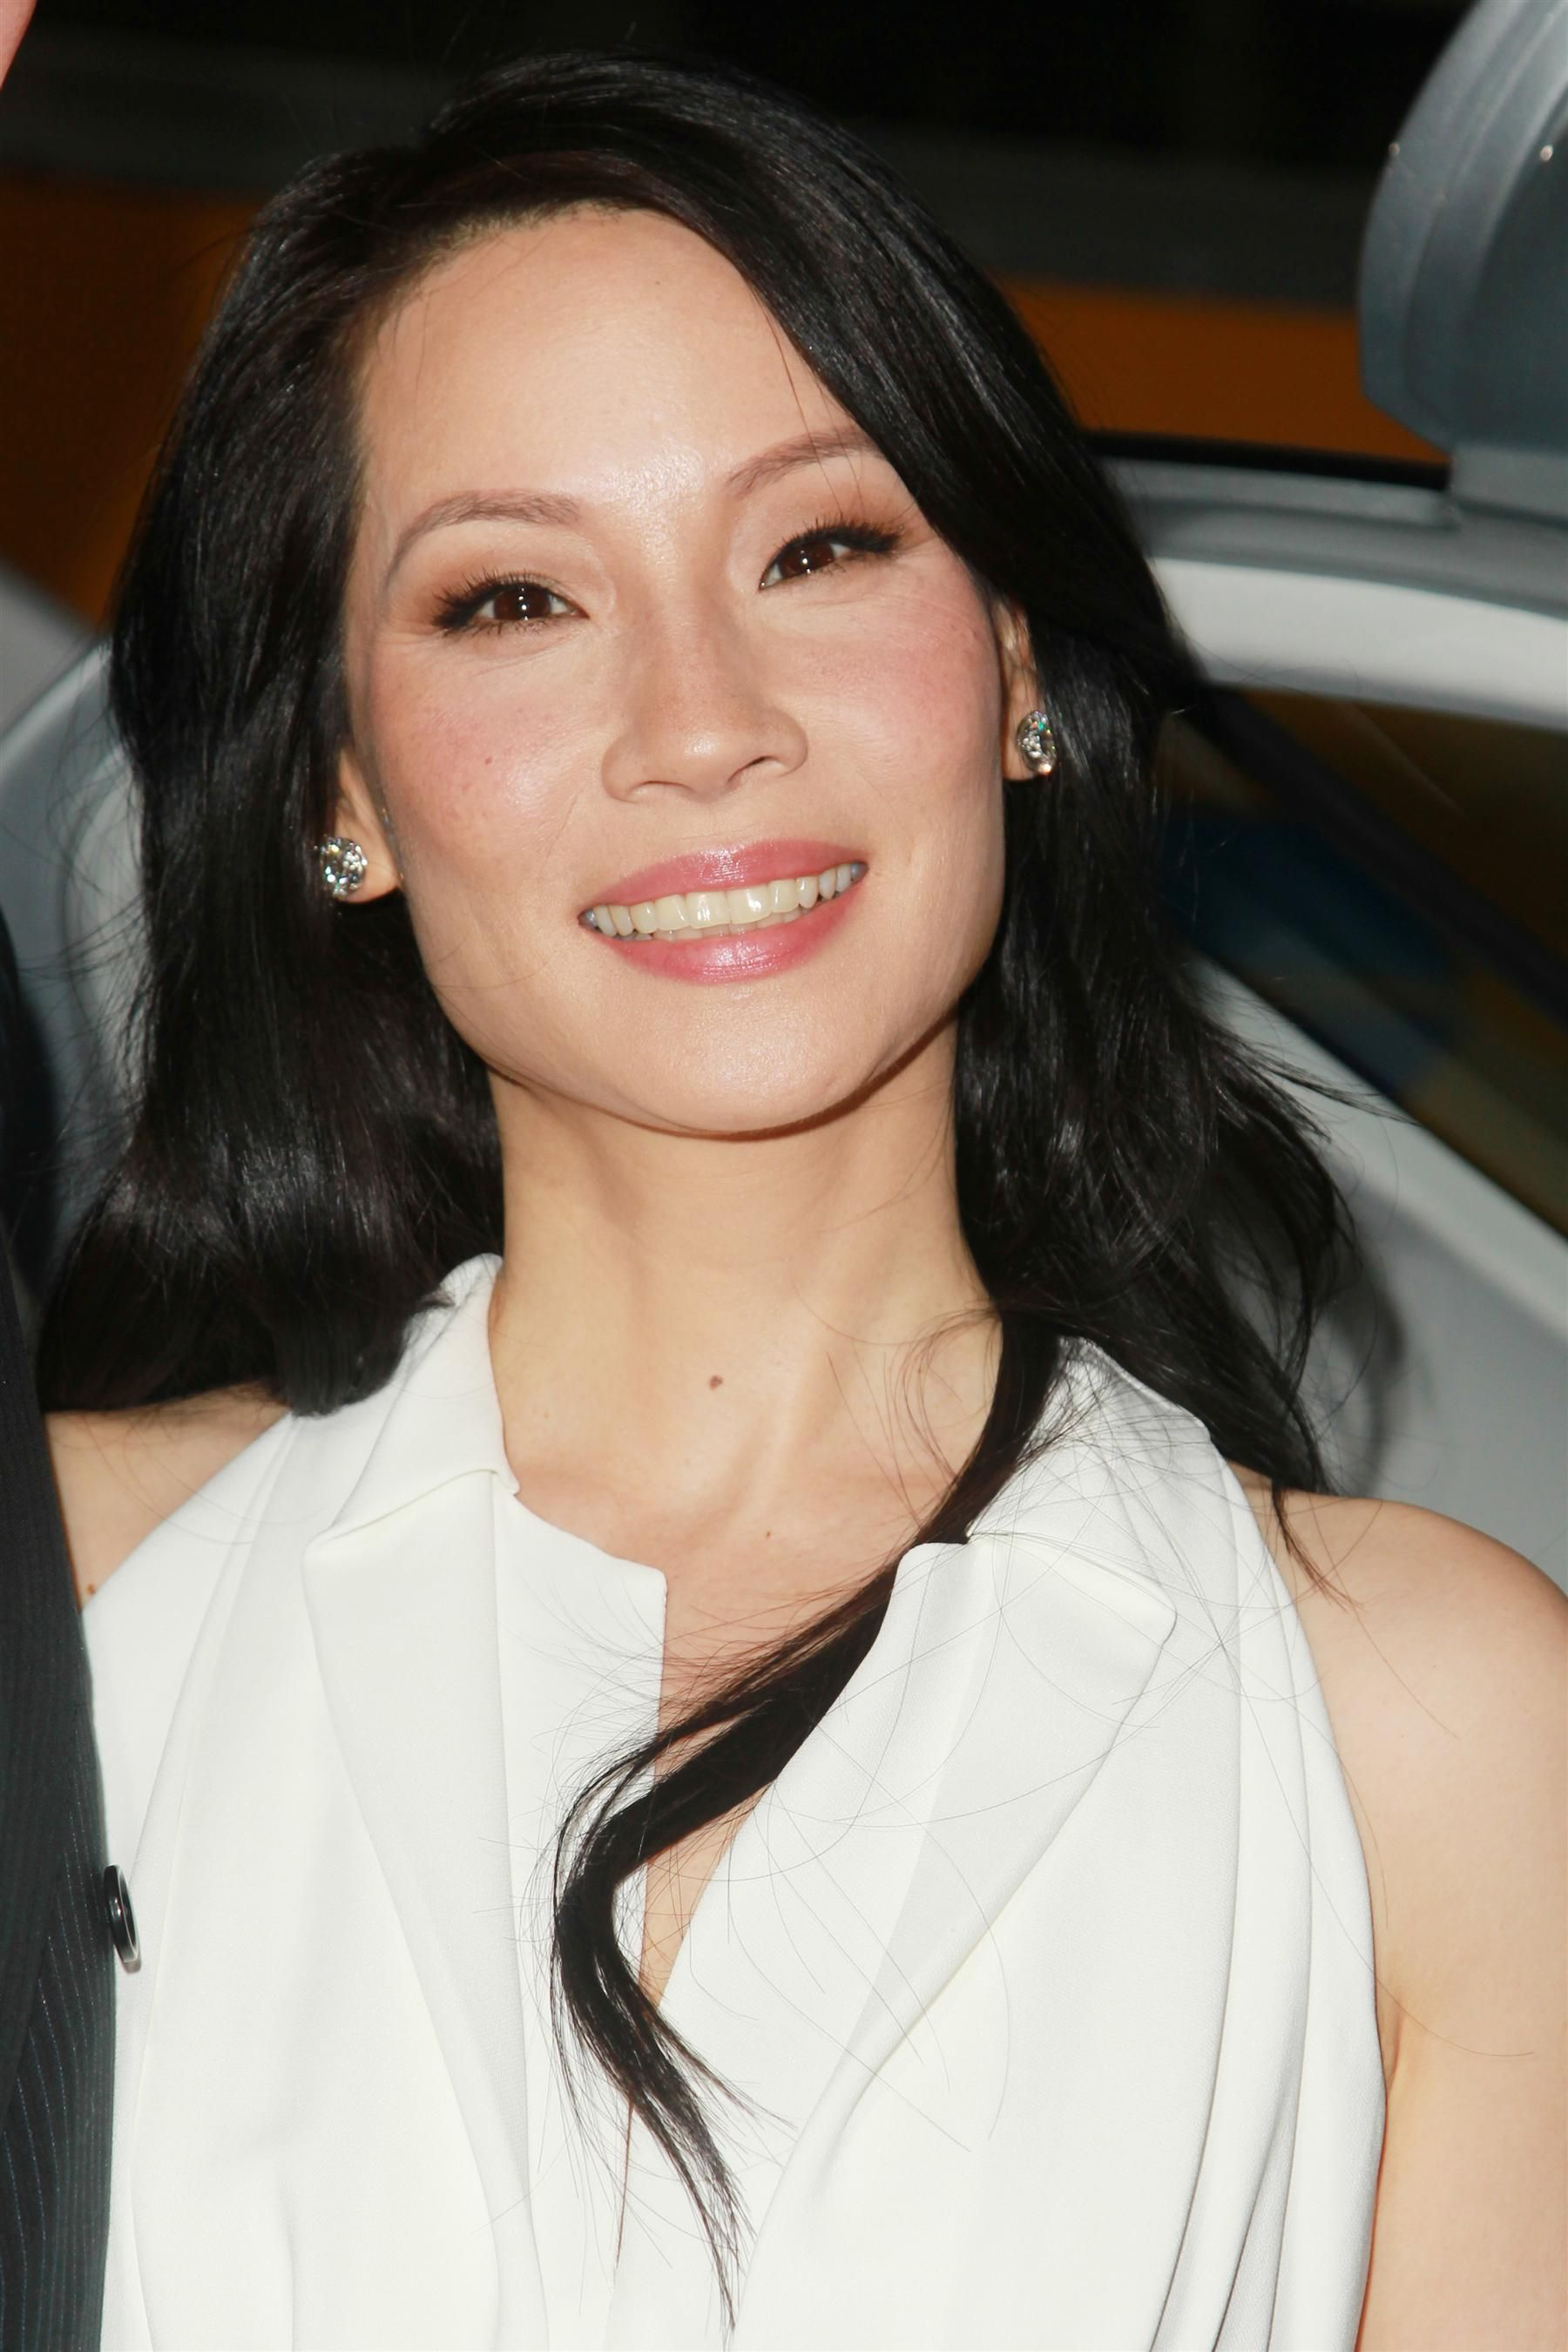 Hacked Lucy Liu nude photos 2019